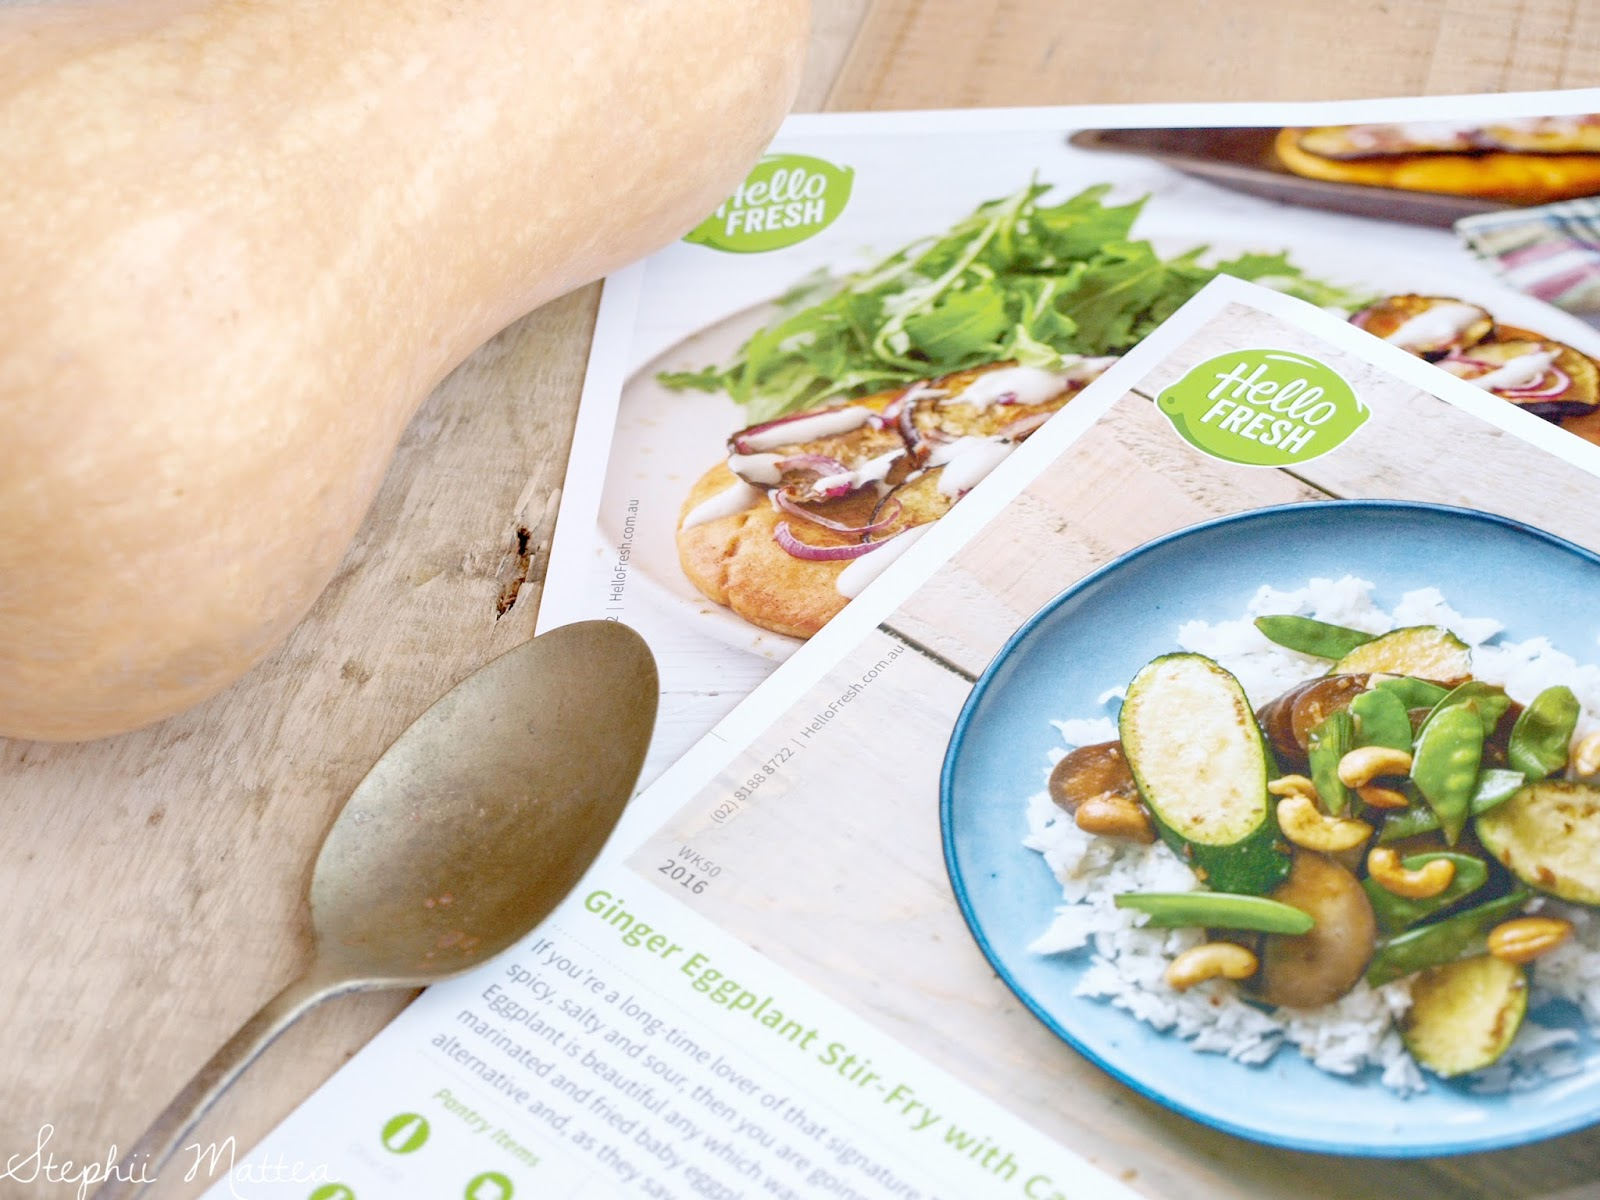 Hellofresh Meal Kit Delivery Service  Length In Inches